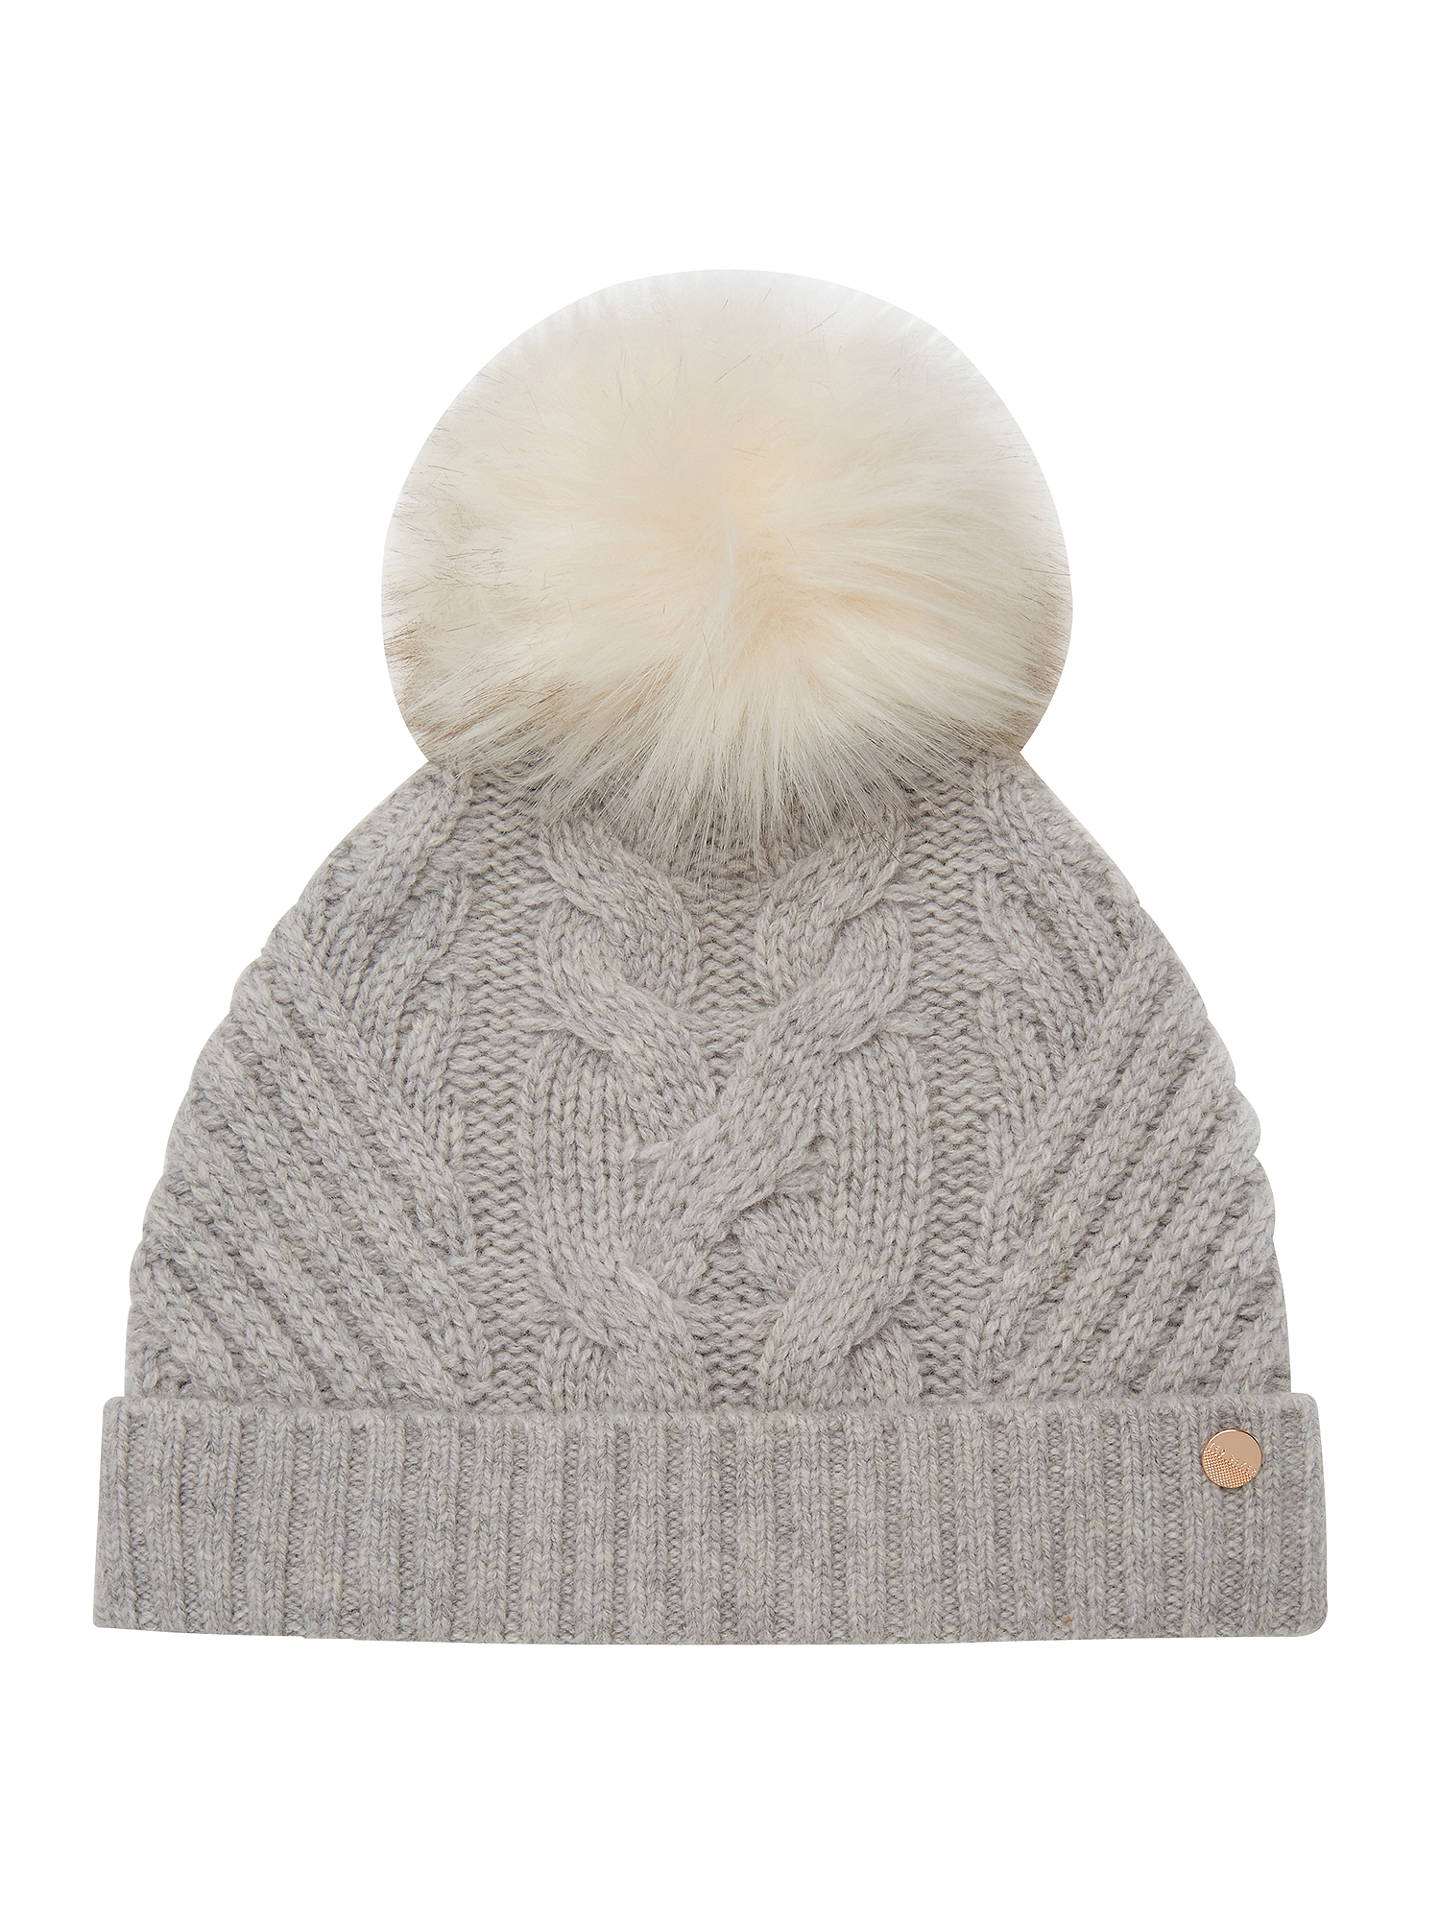 Ted Baker Cable Knit Faux Fur Pom Pom Beanie Hat at John Lewis ... c2e453cfb895